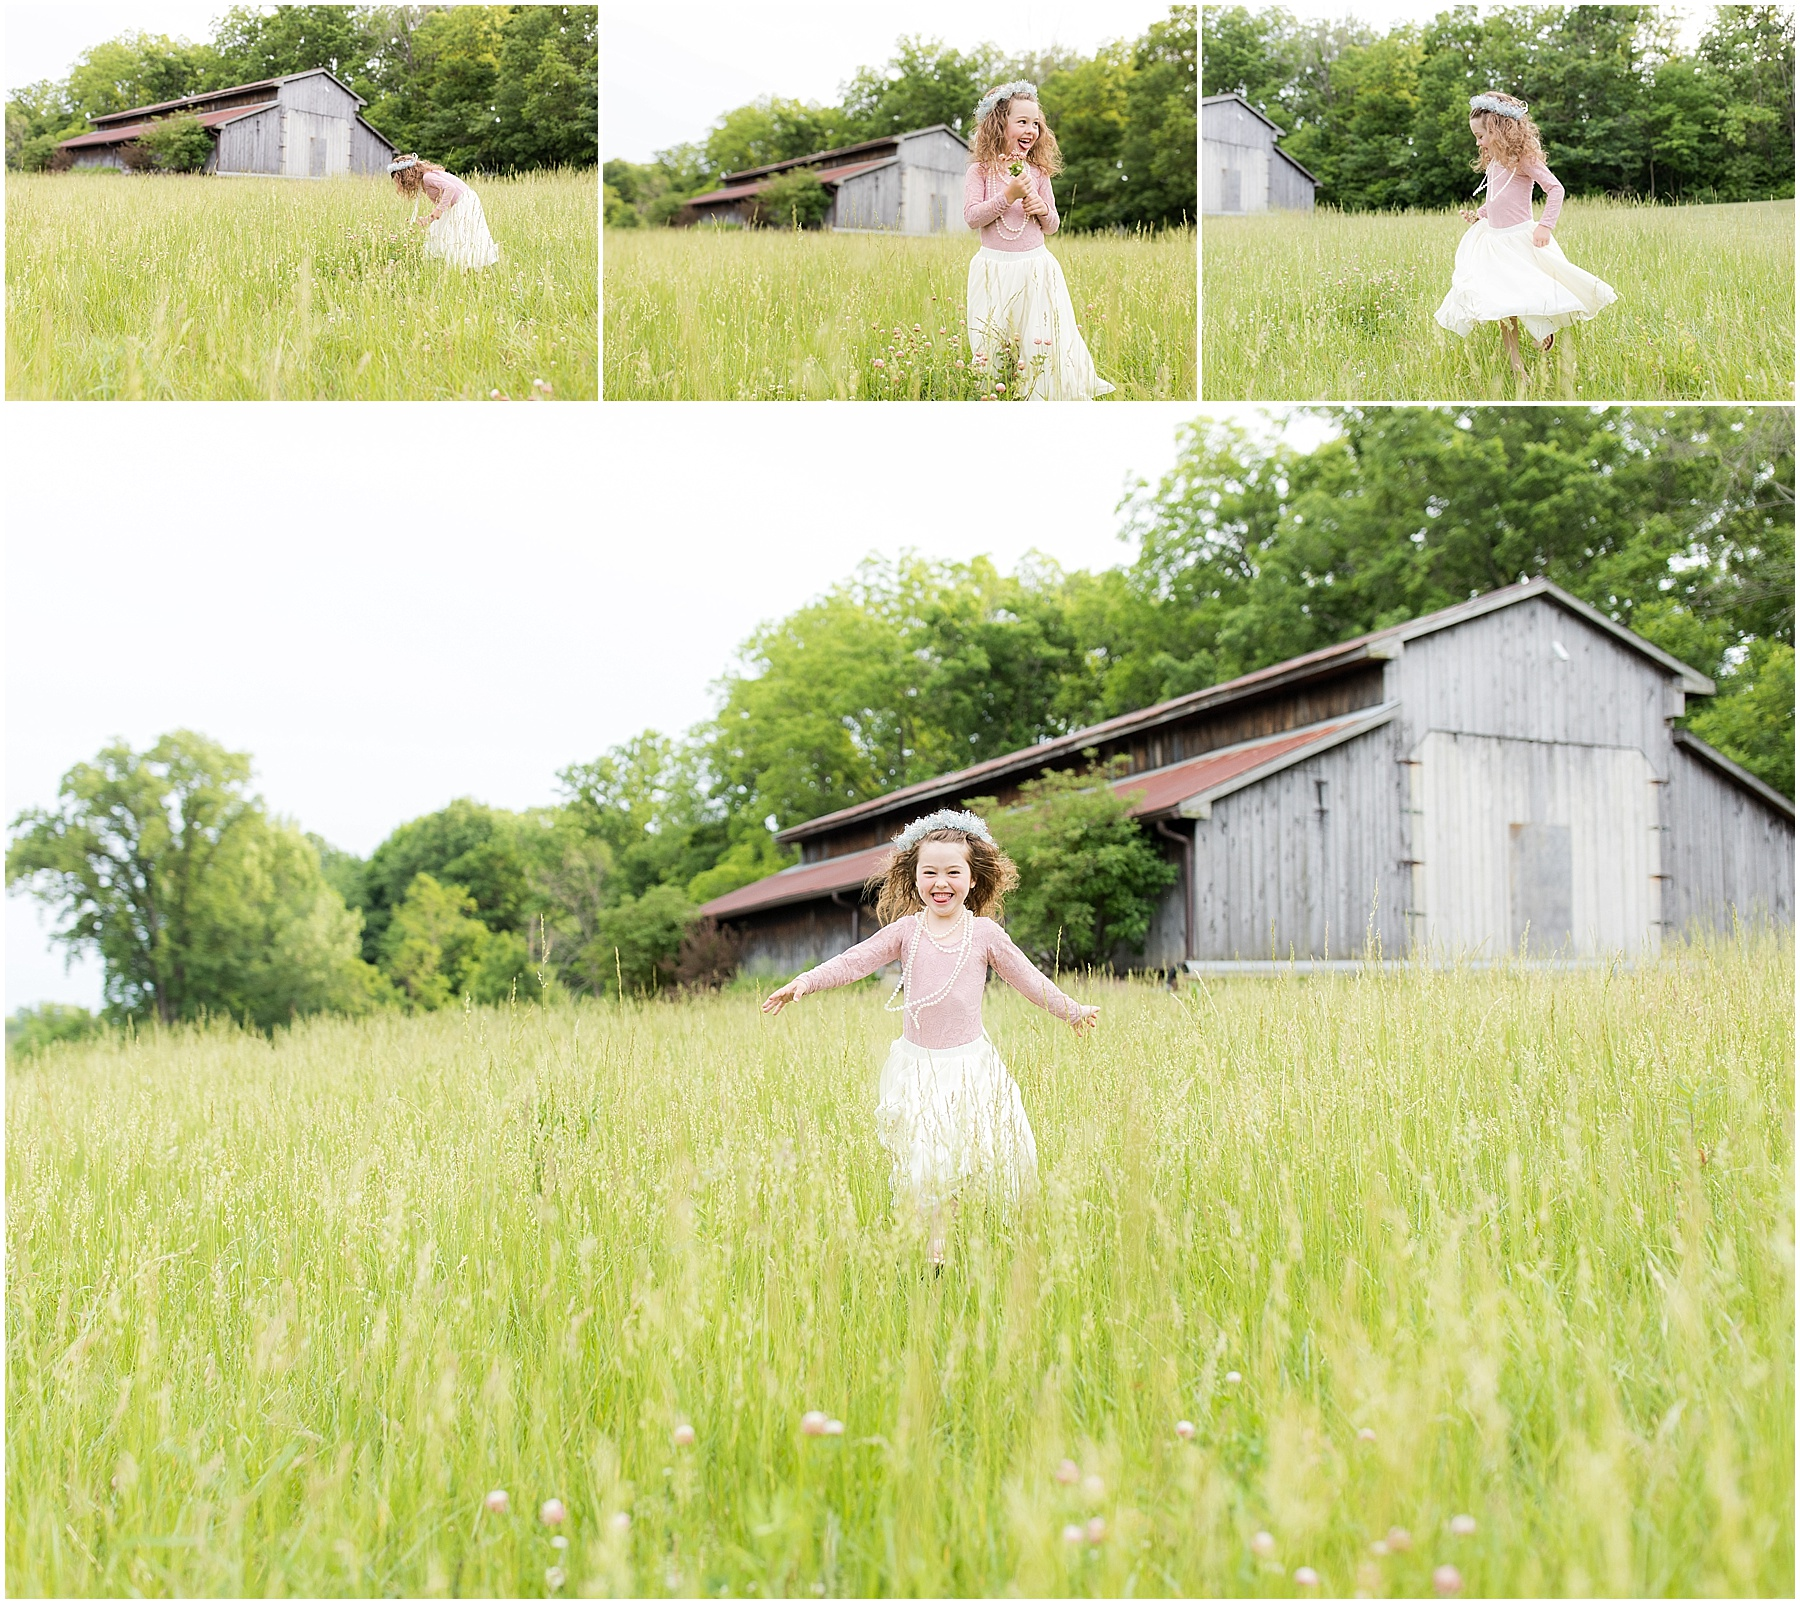 Little girl running and dancing in the field, Indianapolis Children Photography